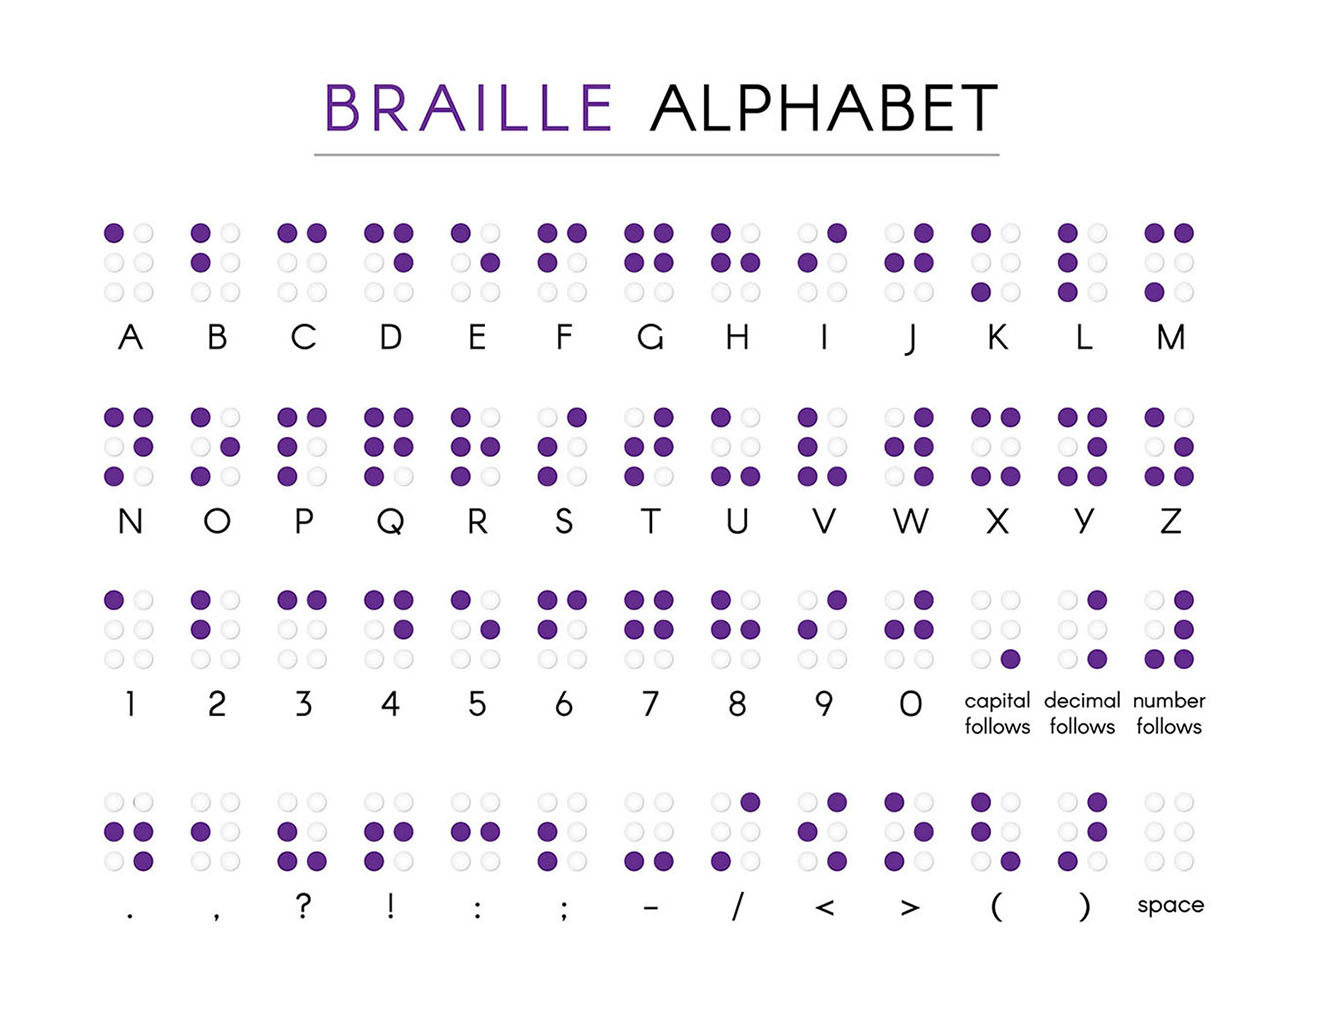 BRAILLE THE MOST BEAUTIFUL LANGUAGE